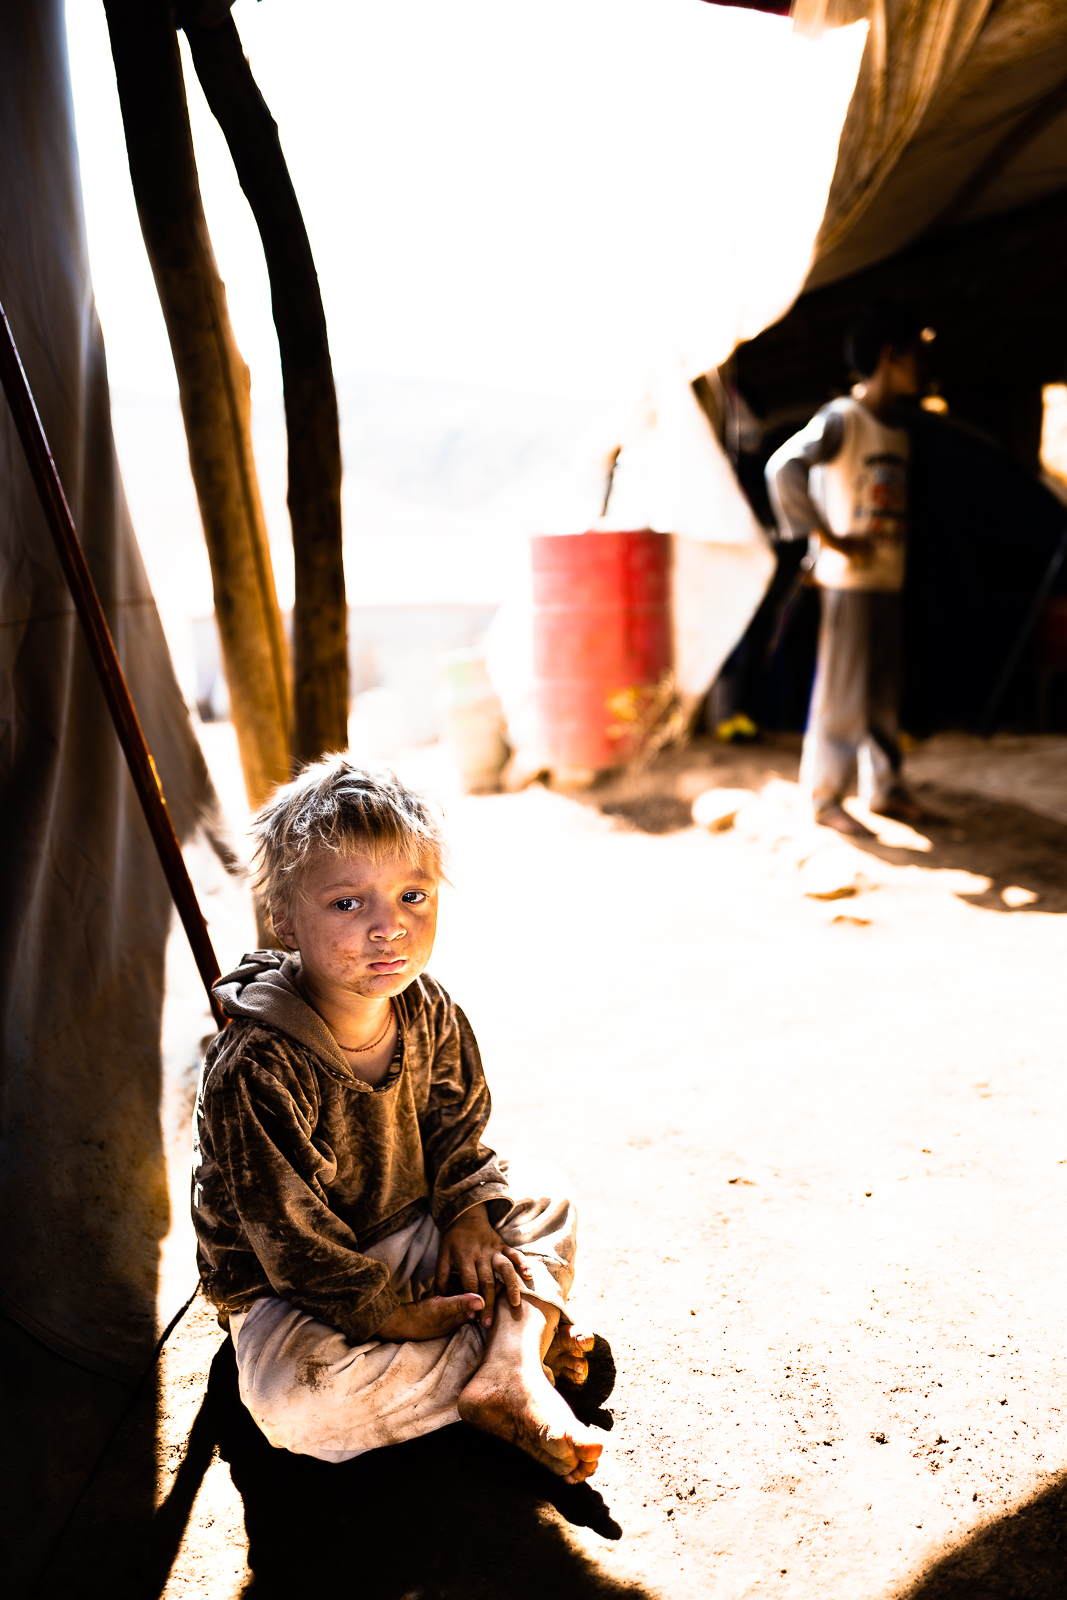 A child is learning how to avoid booby traps from an ONG. Sinjar mount